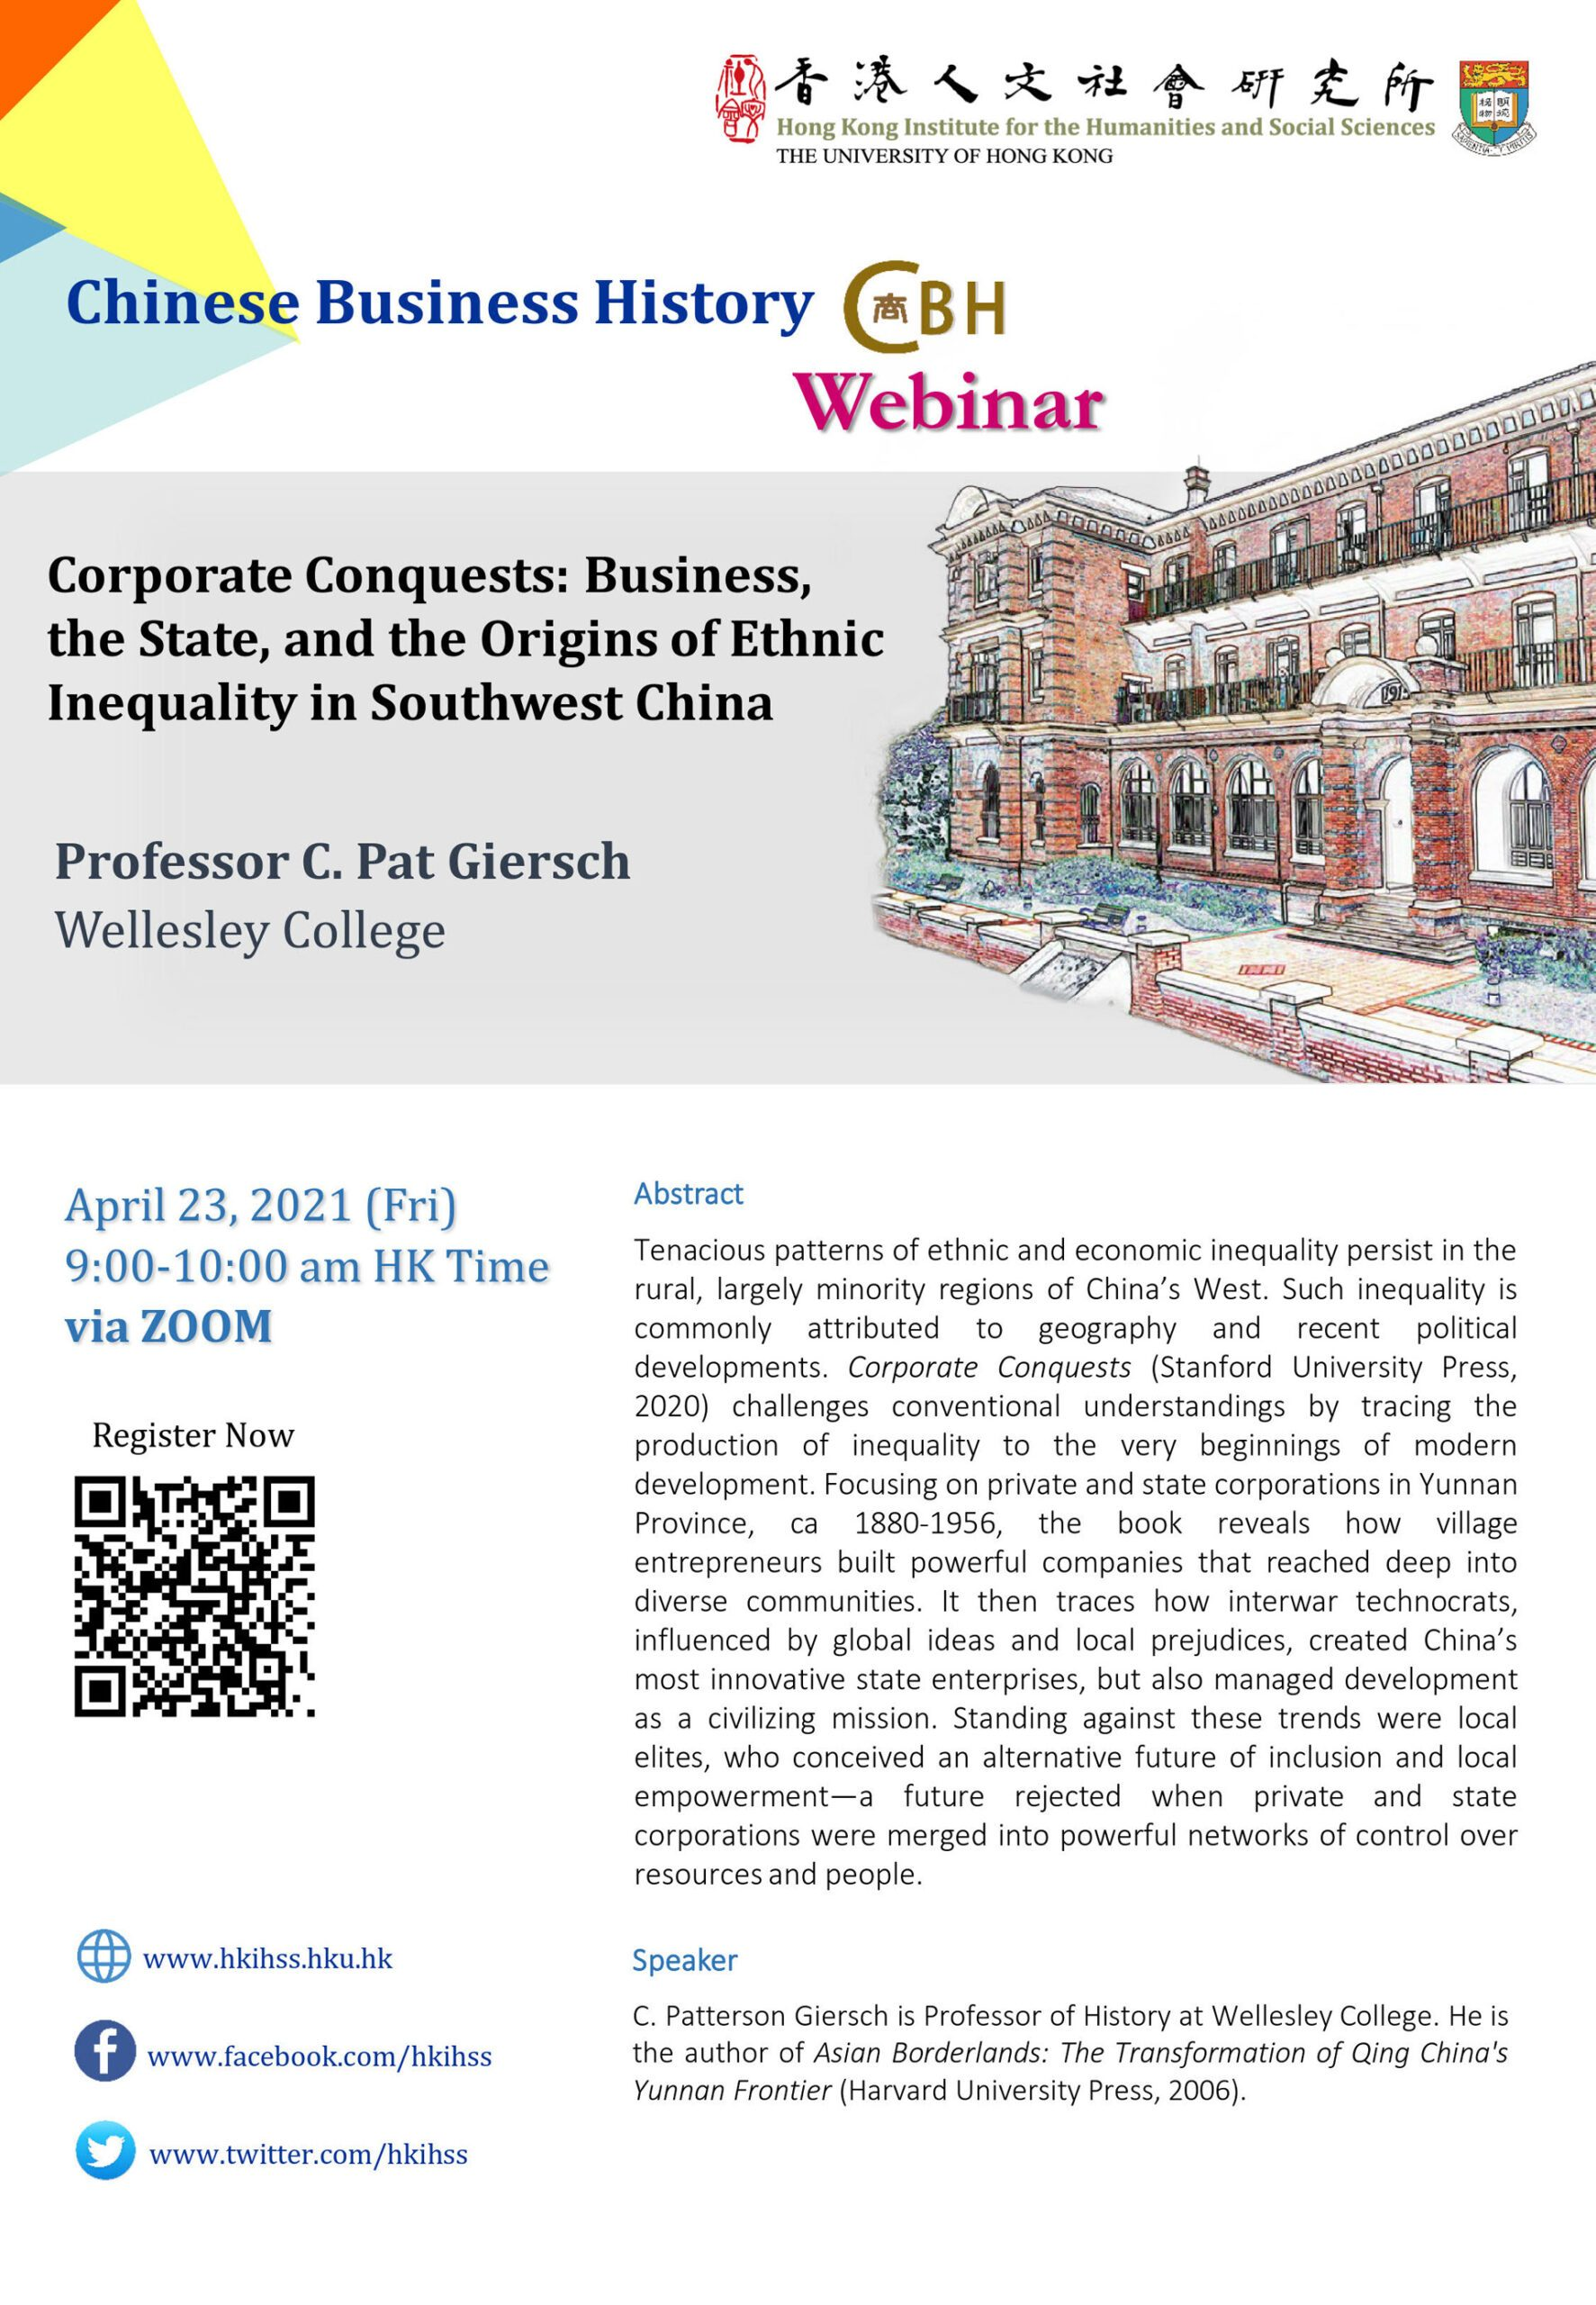 "Chinese Business History Webinar on ""Corporate Conquests: Business, the State, and the Origins of Ethnic Inequality in Southwest China"" by Professor C. Pat Giersch (April 23, 2021)"